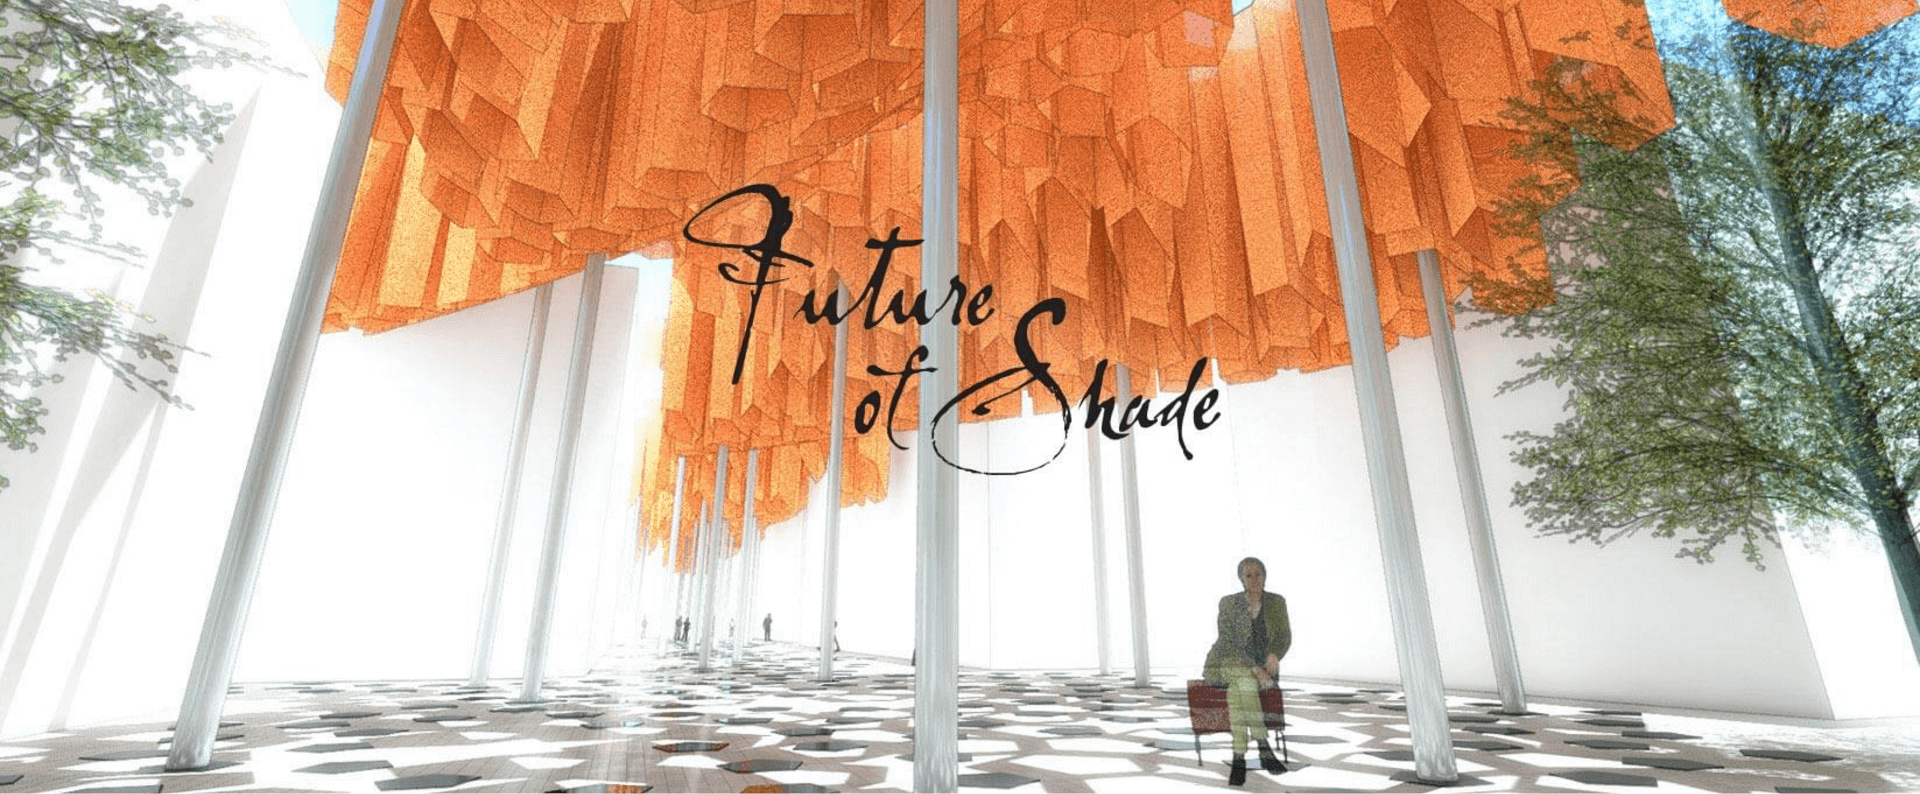 Future of Shade concept featuring hanging orange structures of Sunbrella fabrics